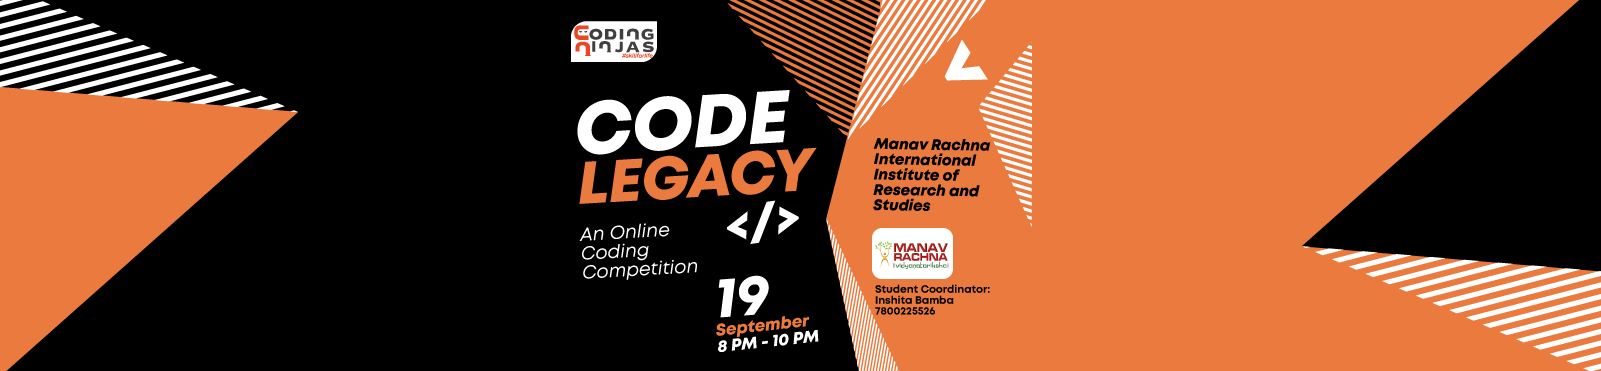 "Code Legacy at ""Manav Rachna international institute of research and studies"""